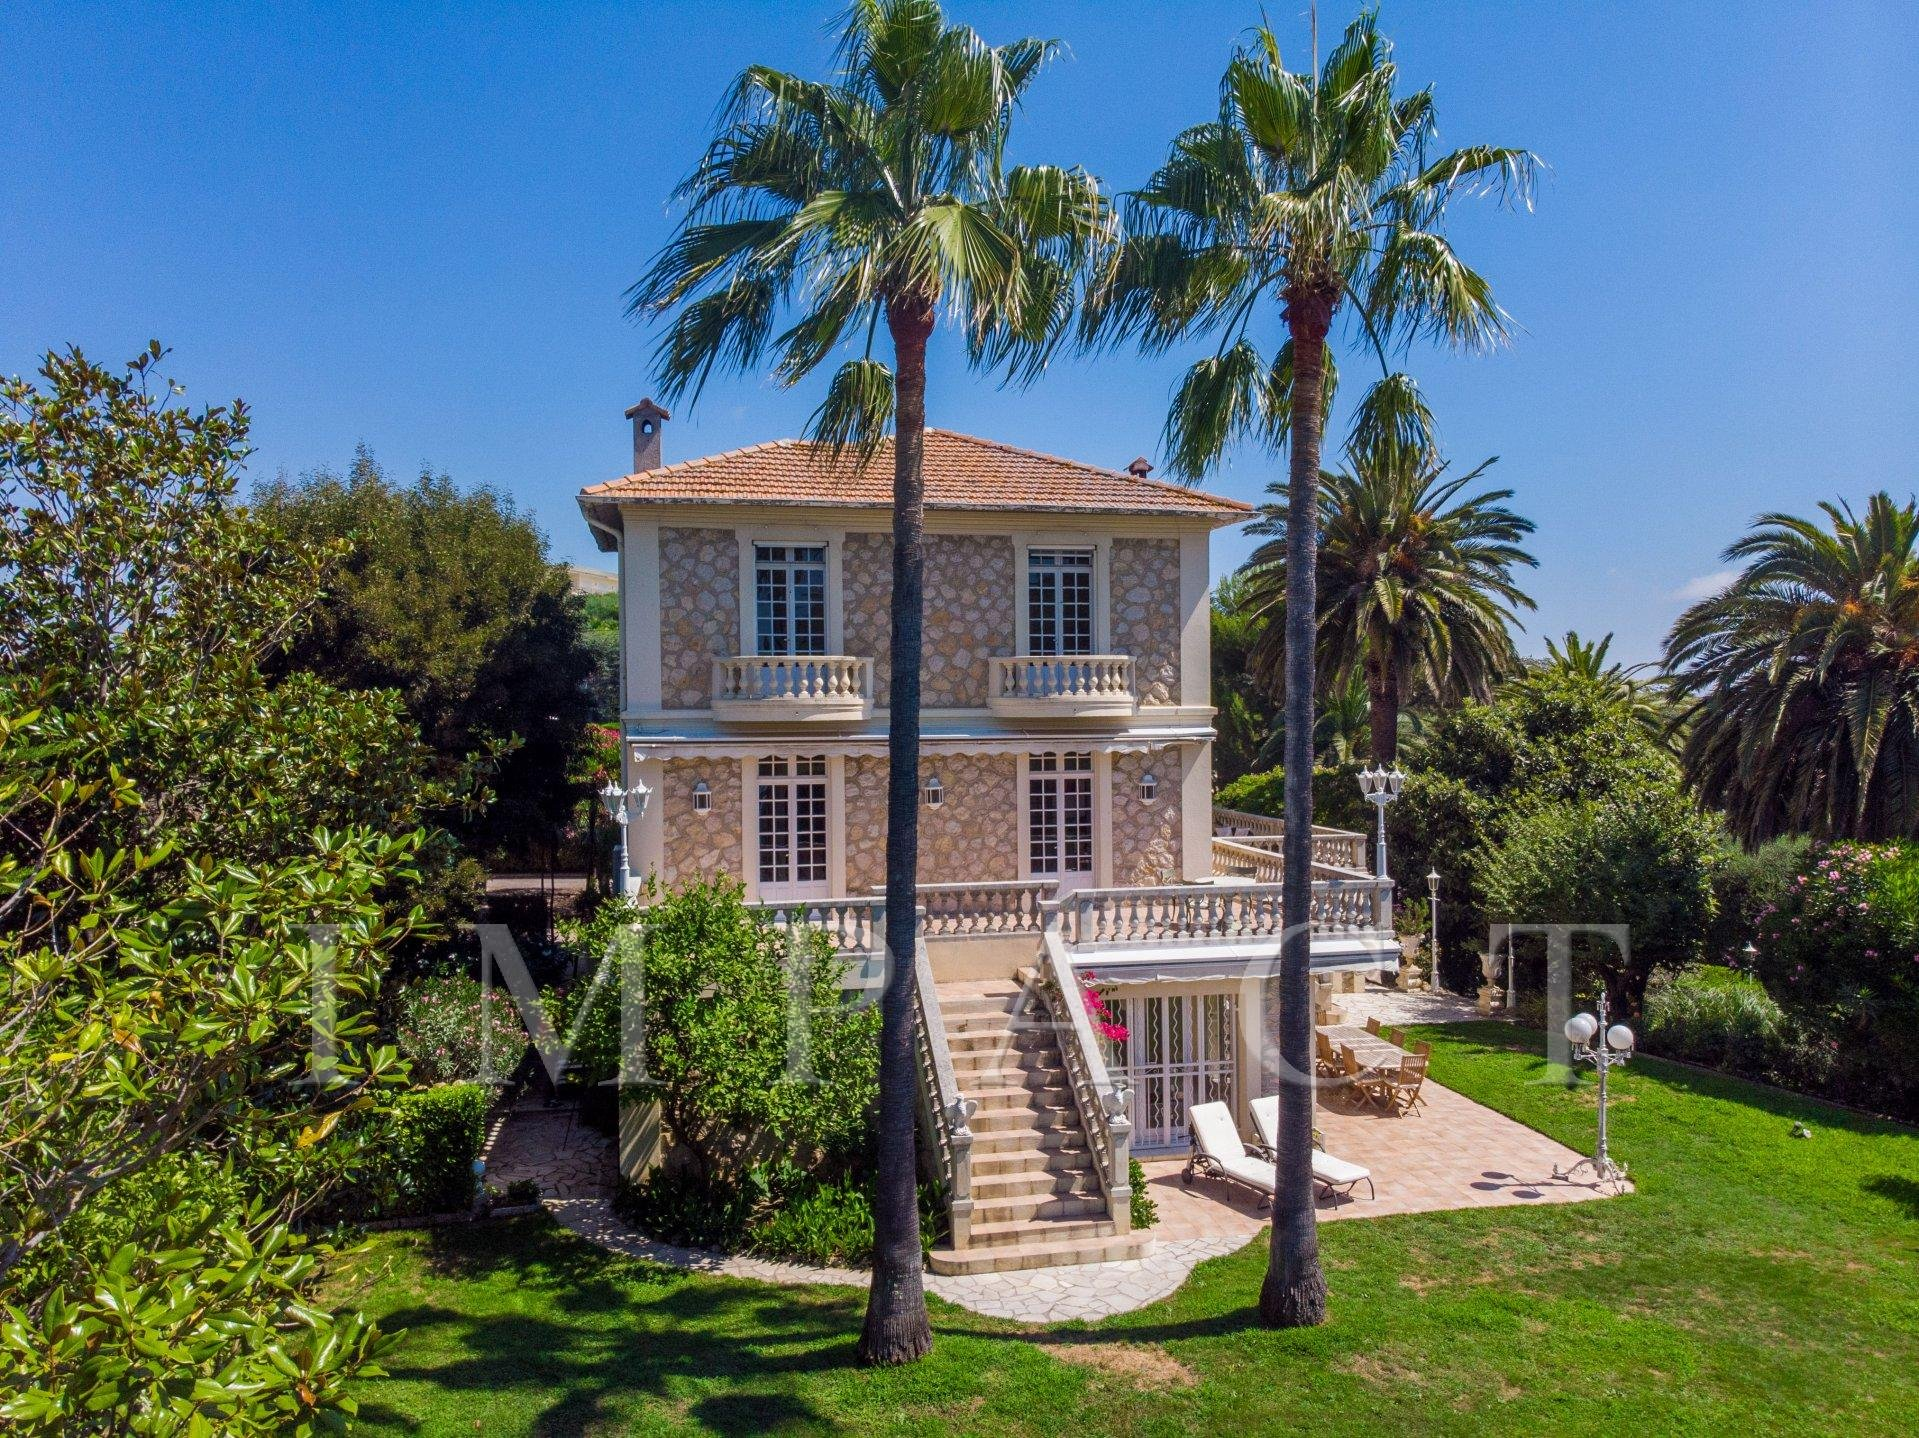 HOUSE FOR SALE - SUPER CANNES